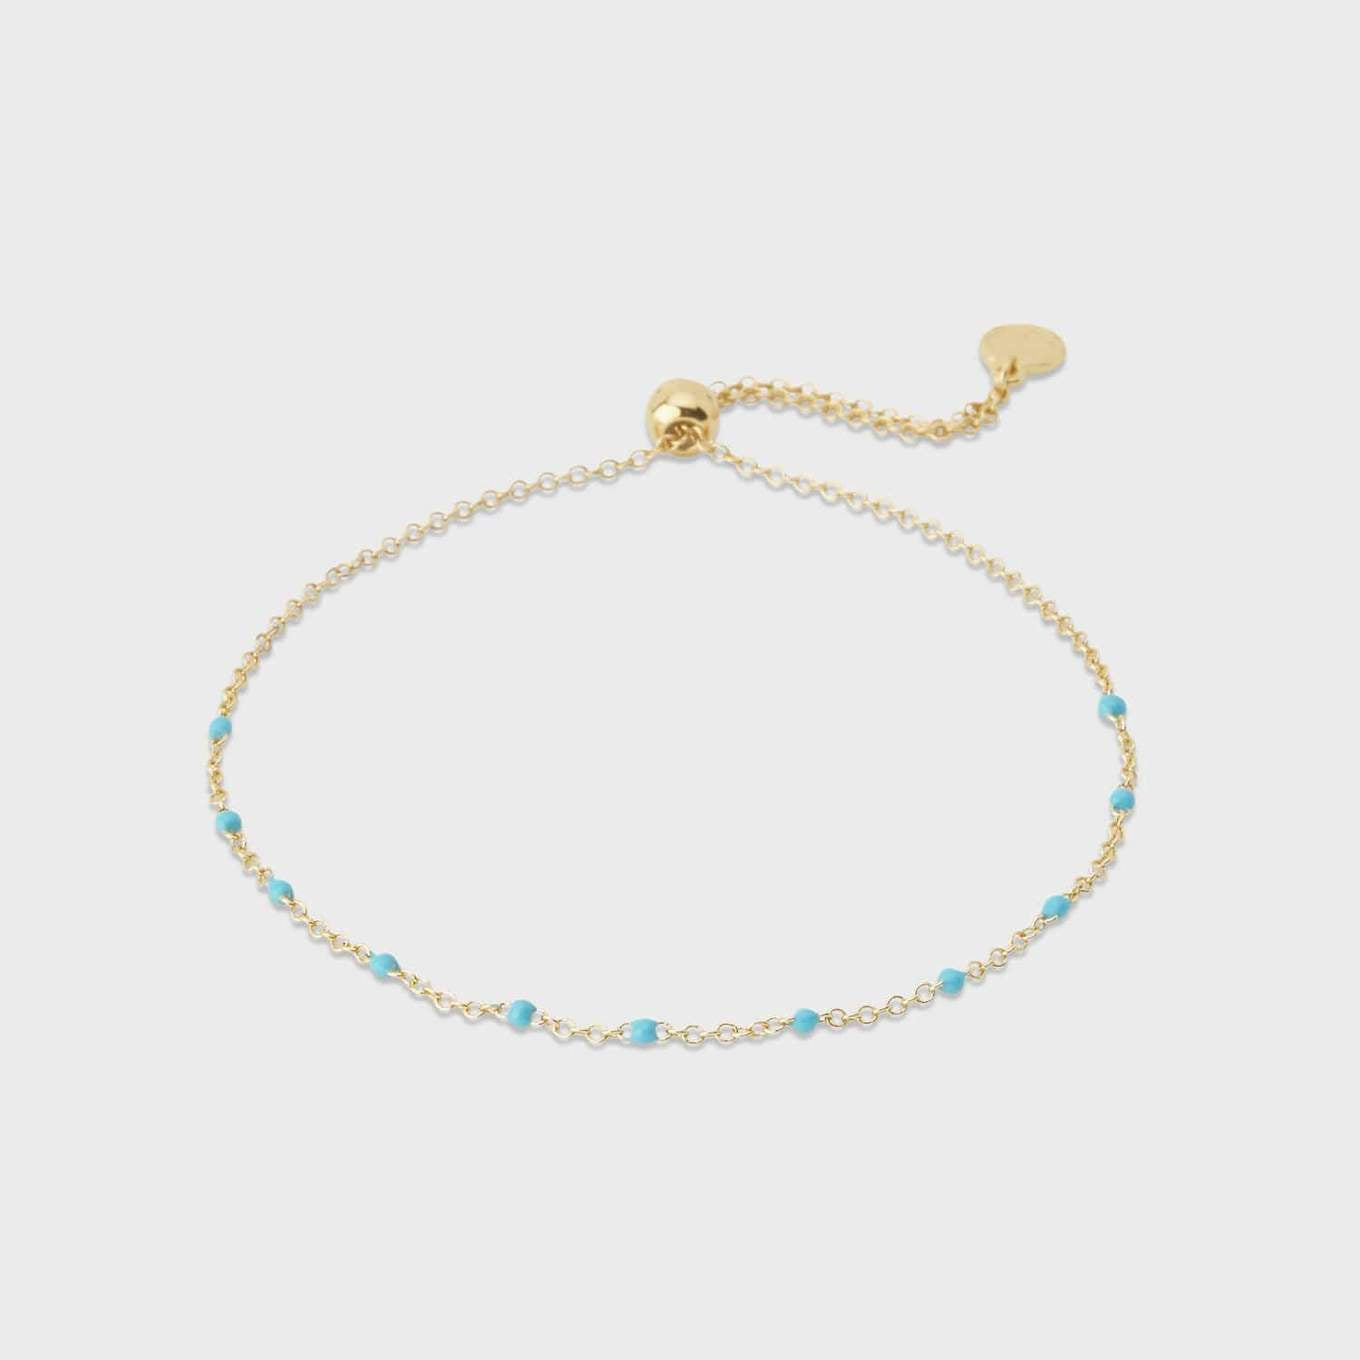 "A light splash of color is an ideal addition to your current bracelet stack. This delicate adjustable bracelet features brightly-hued enamel beads.  Bracelet adjusts out to 9"" Slide closure Enamel 18k gold plated brass Avoid contact with anything containing derivatives of alcohol"